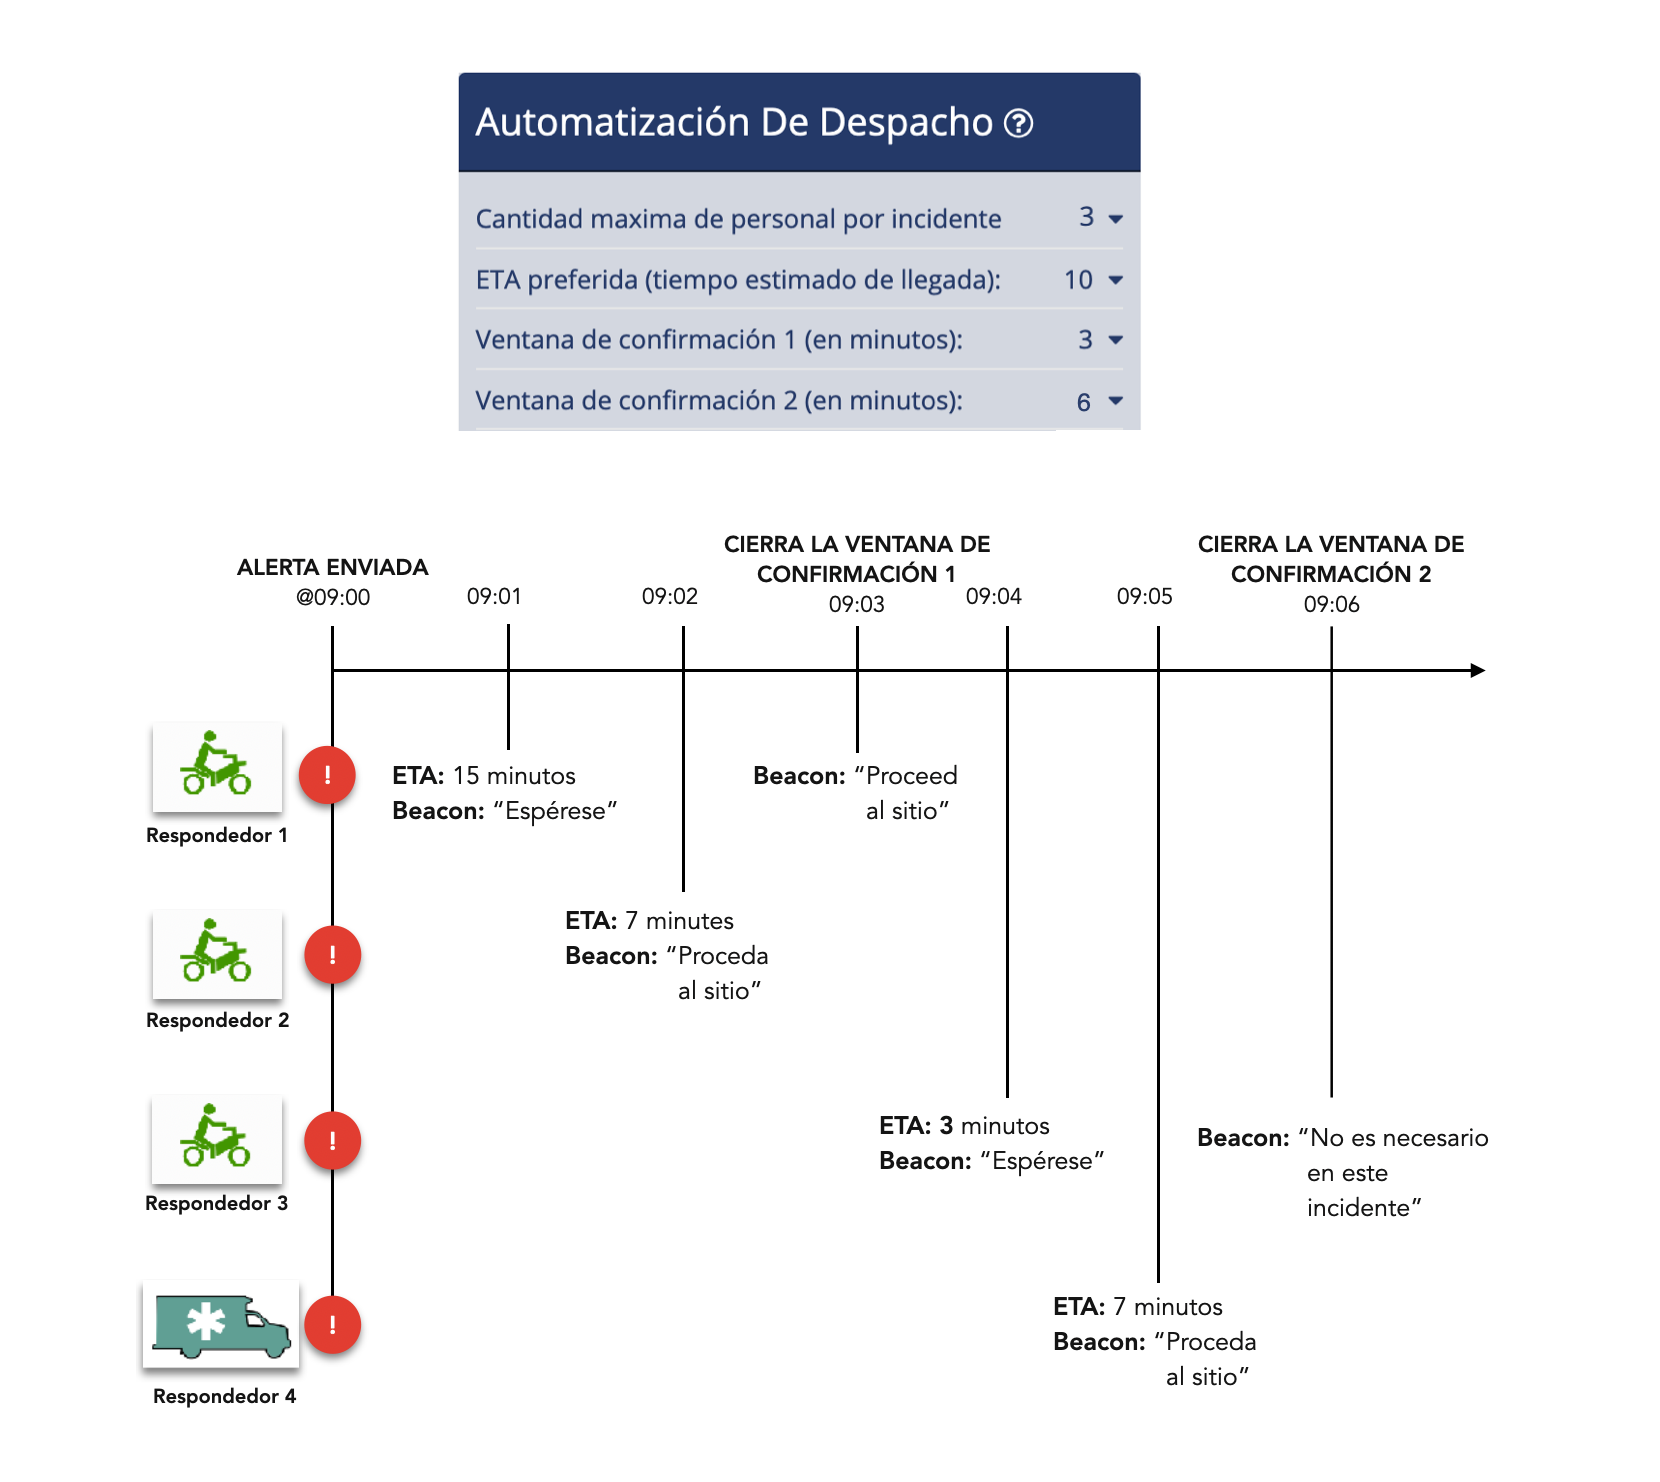 Ventanas de Confirmación - Guía Despachador - Despacho de Emergencia Beacon